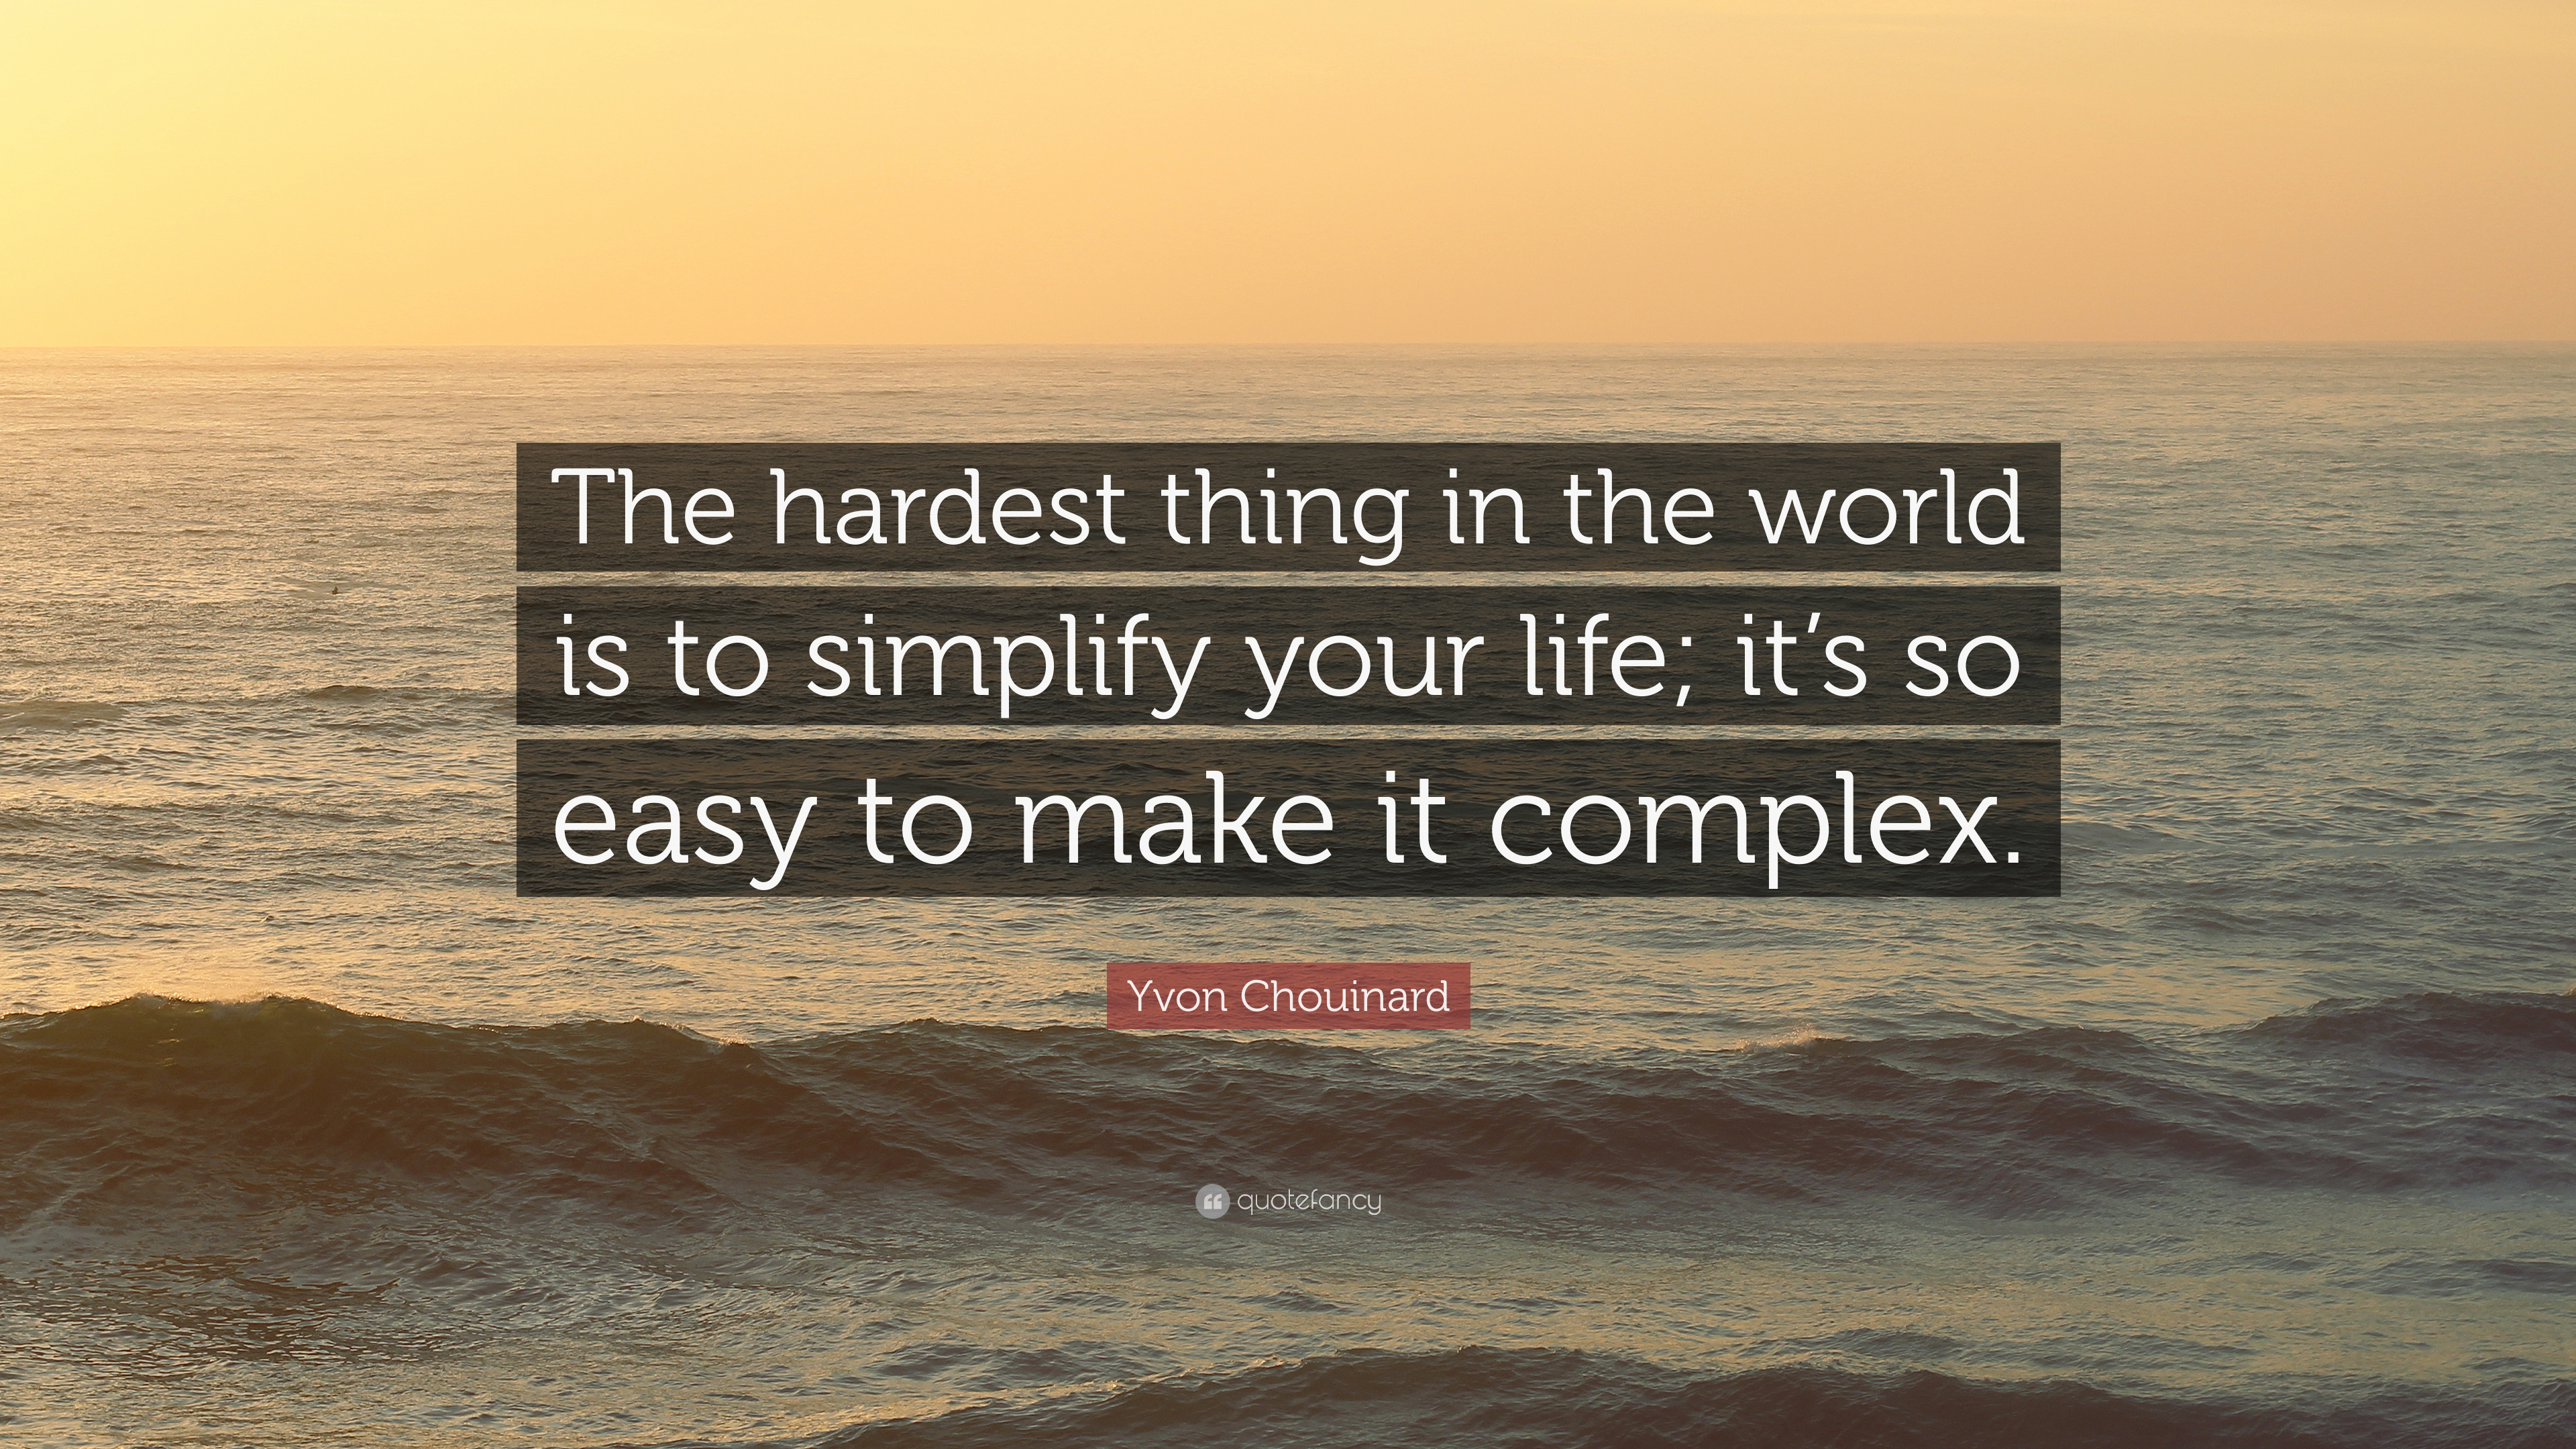 Yvon Chouinard Quote The Hardest Thing In The World Is To Simplify